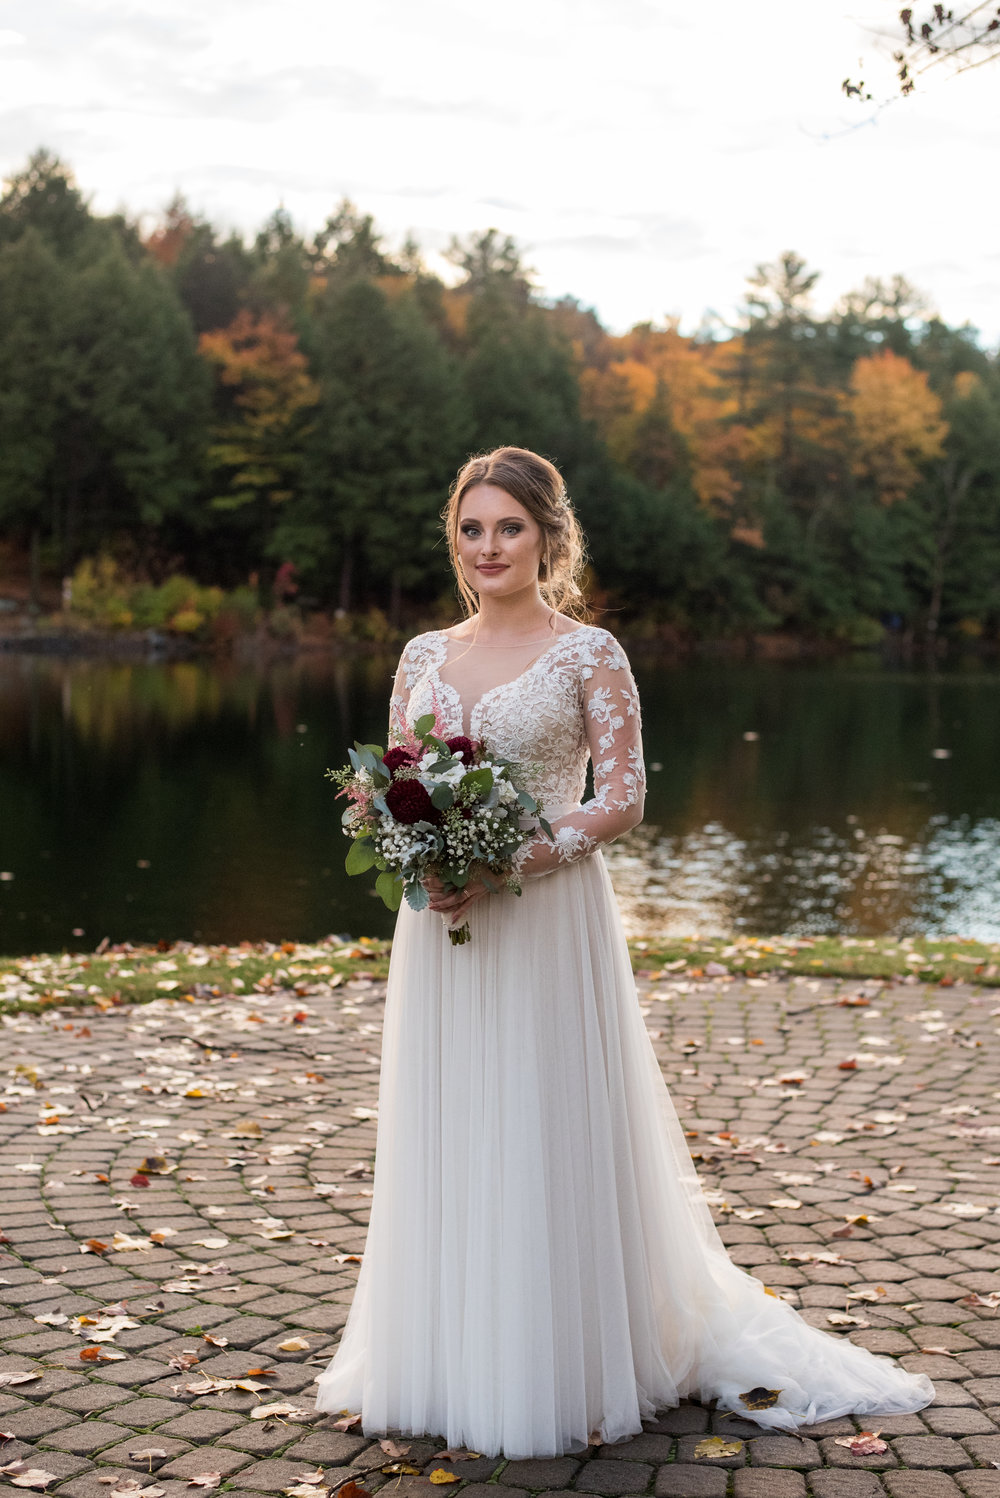 bride-old-daley-on-crooked-lake-albany-ny-wedding-ym-photography